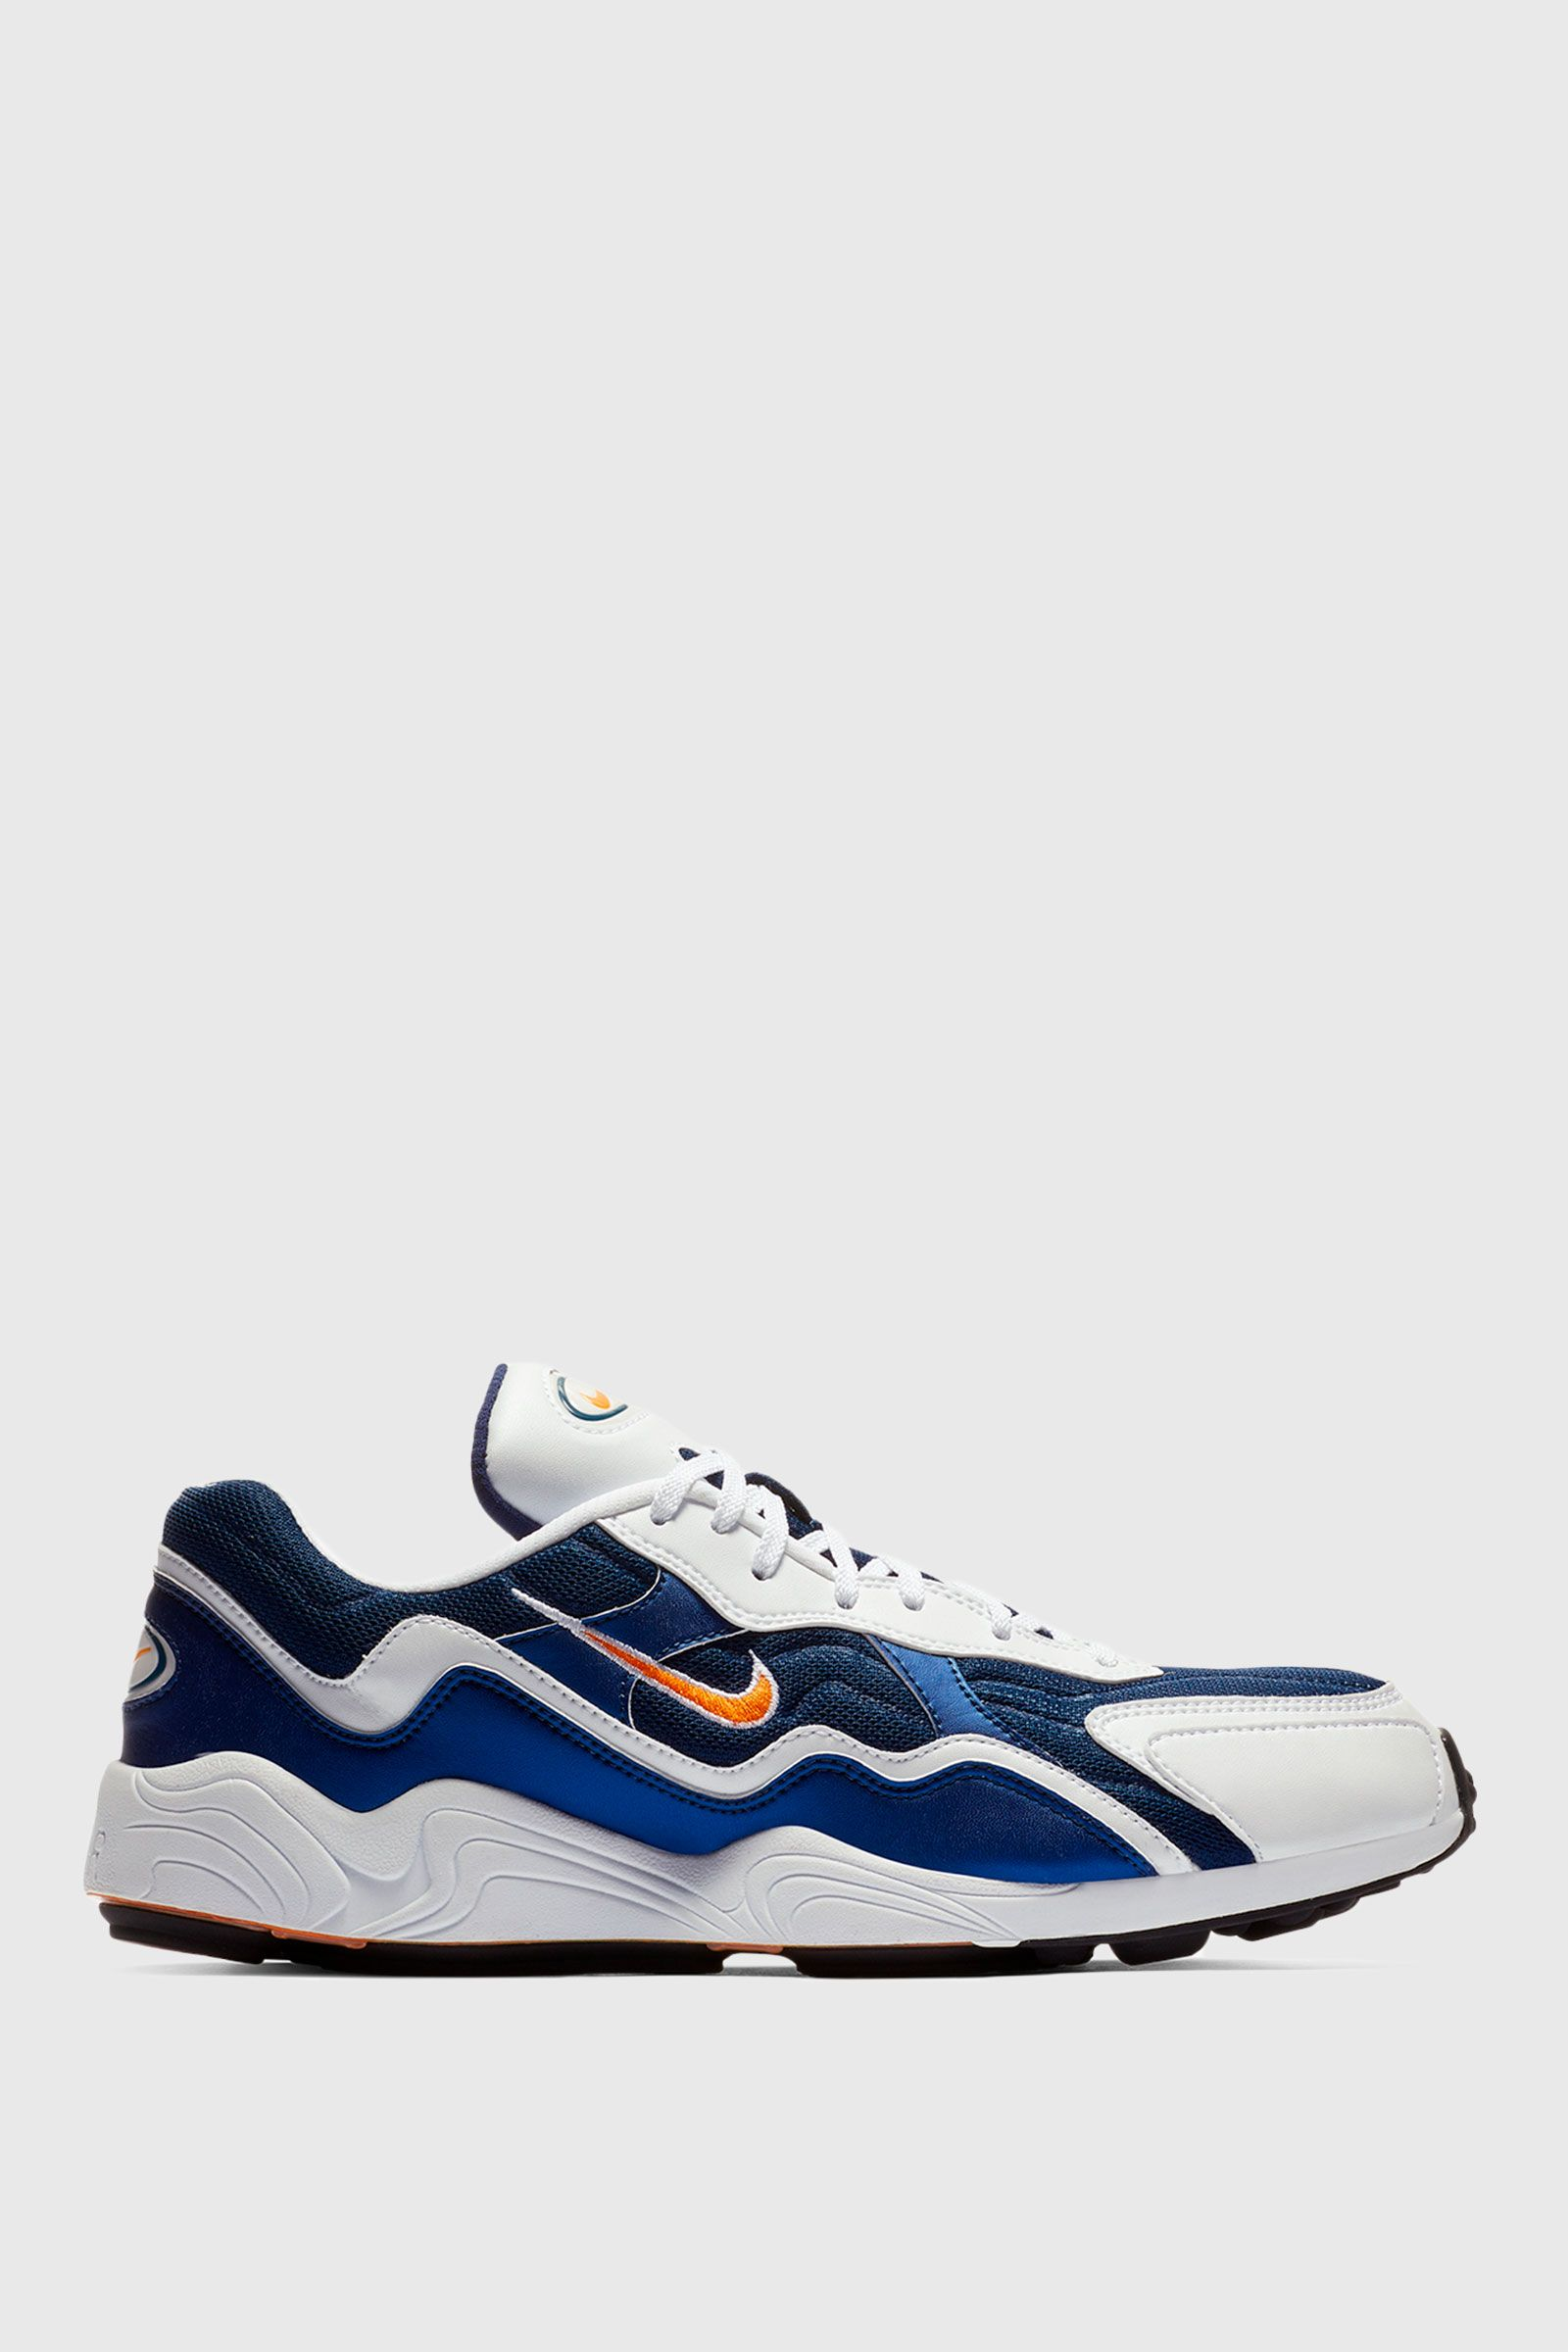 Nike Air Zoom Alpha Men's Shoe Blue price from nike in